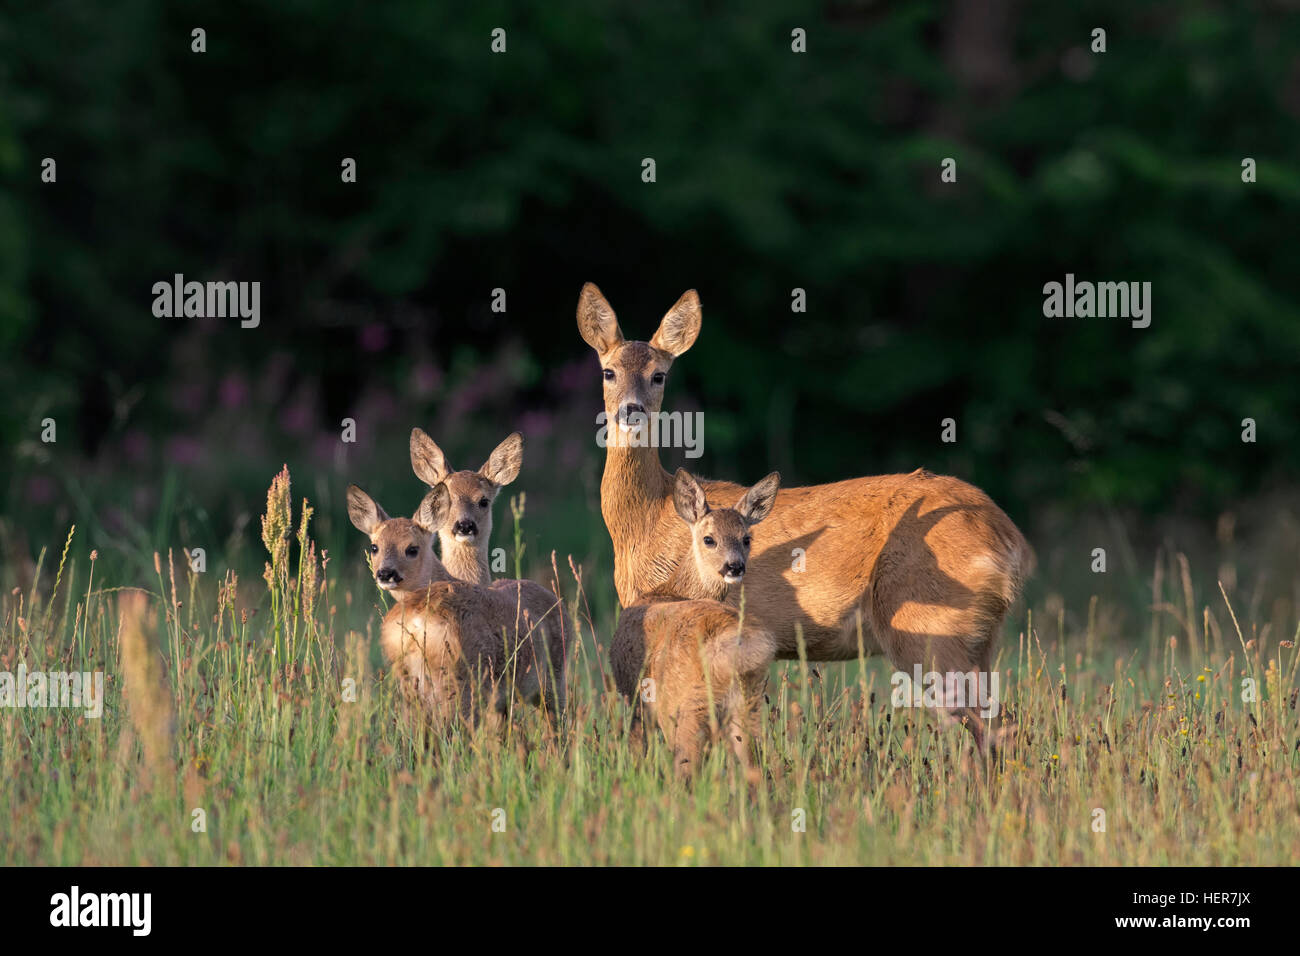 European roe deer (Capreolus capreolus) female with three fawns in grassland at forest's edge in summer - Stock Image